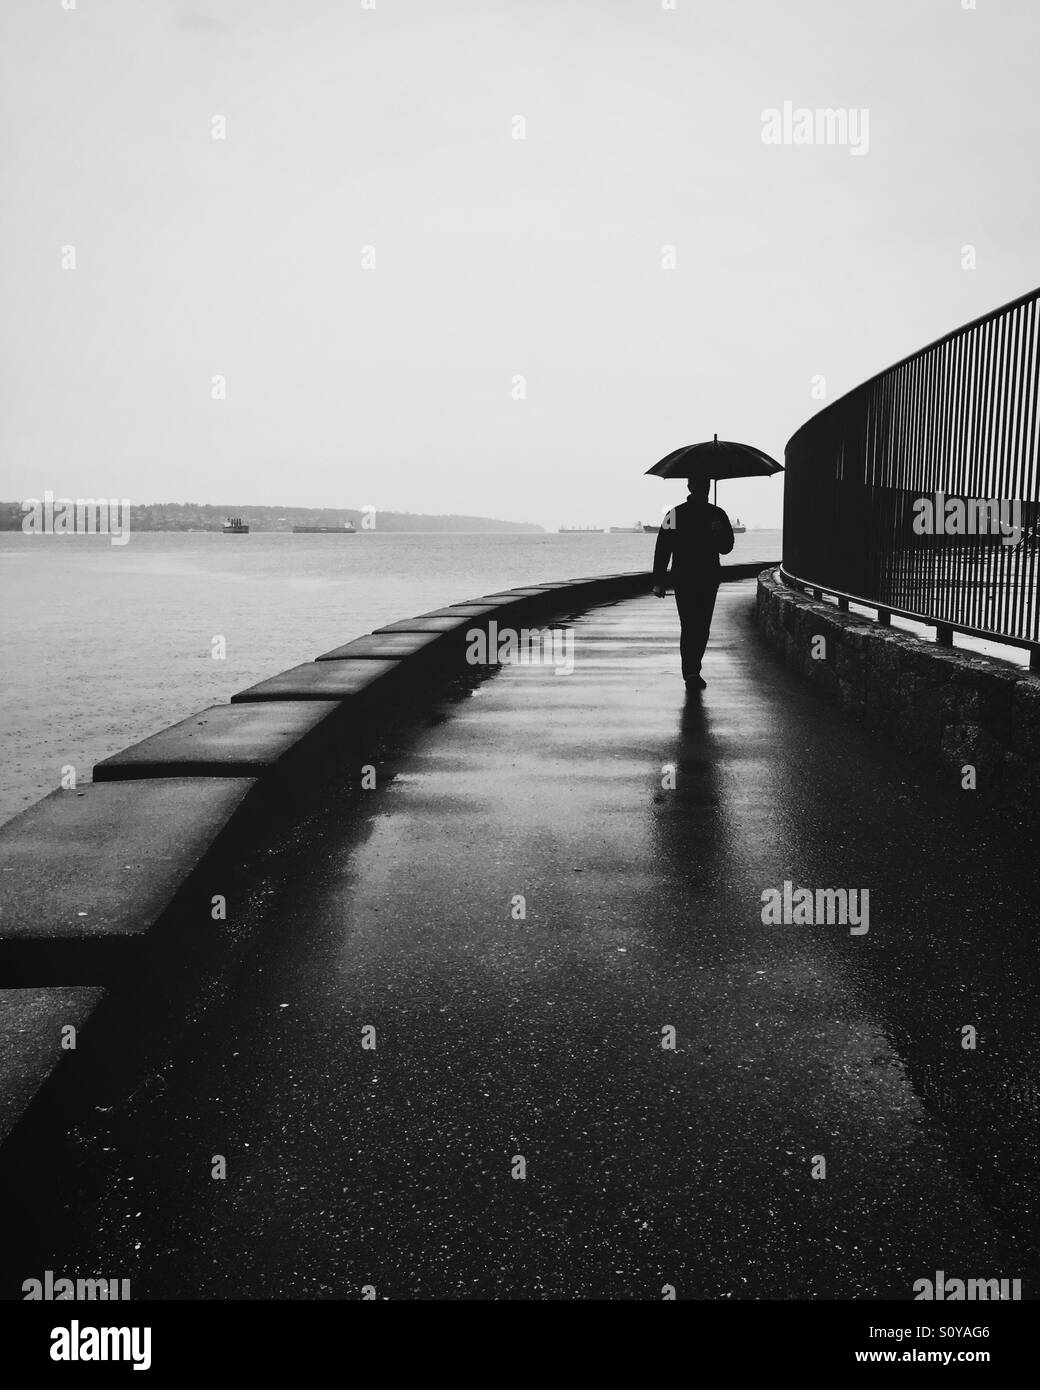 More rain - Stock Image